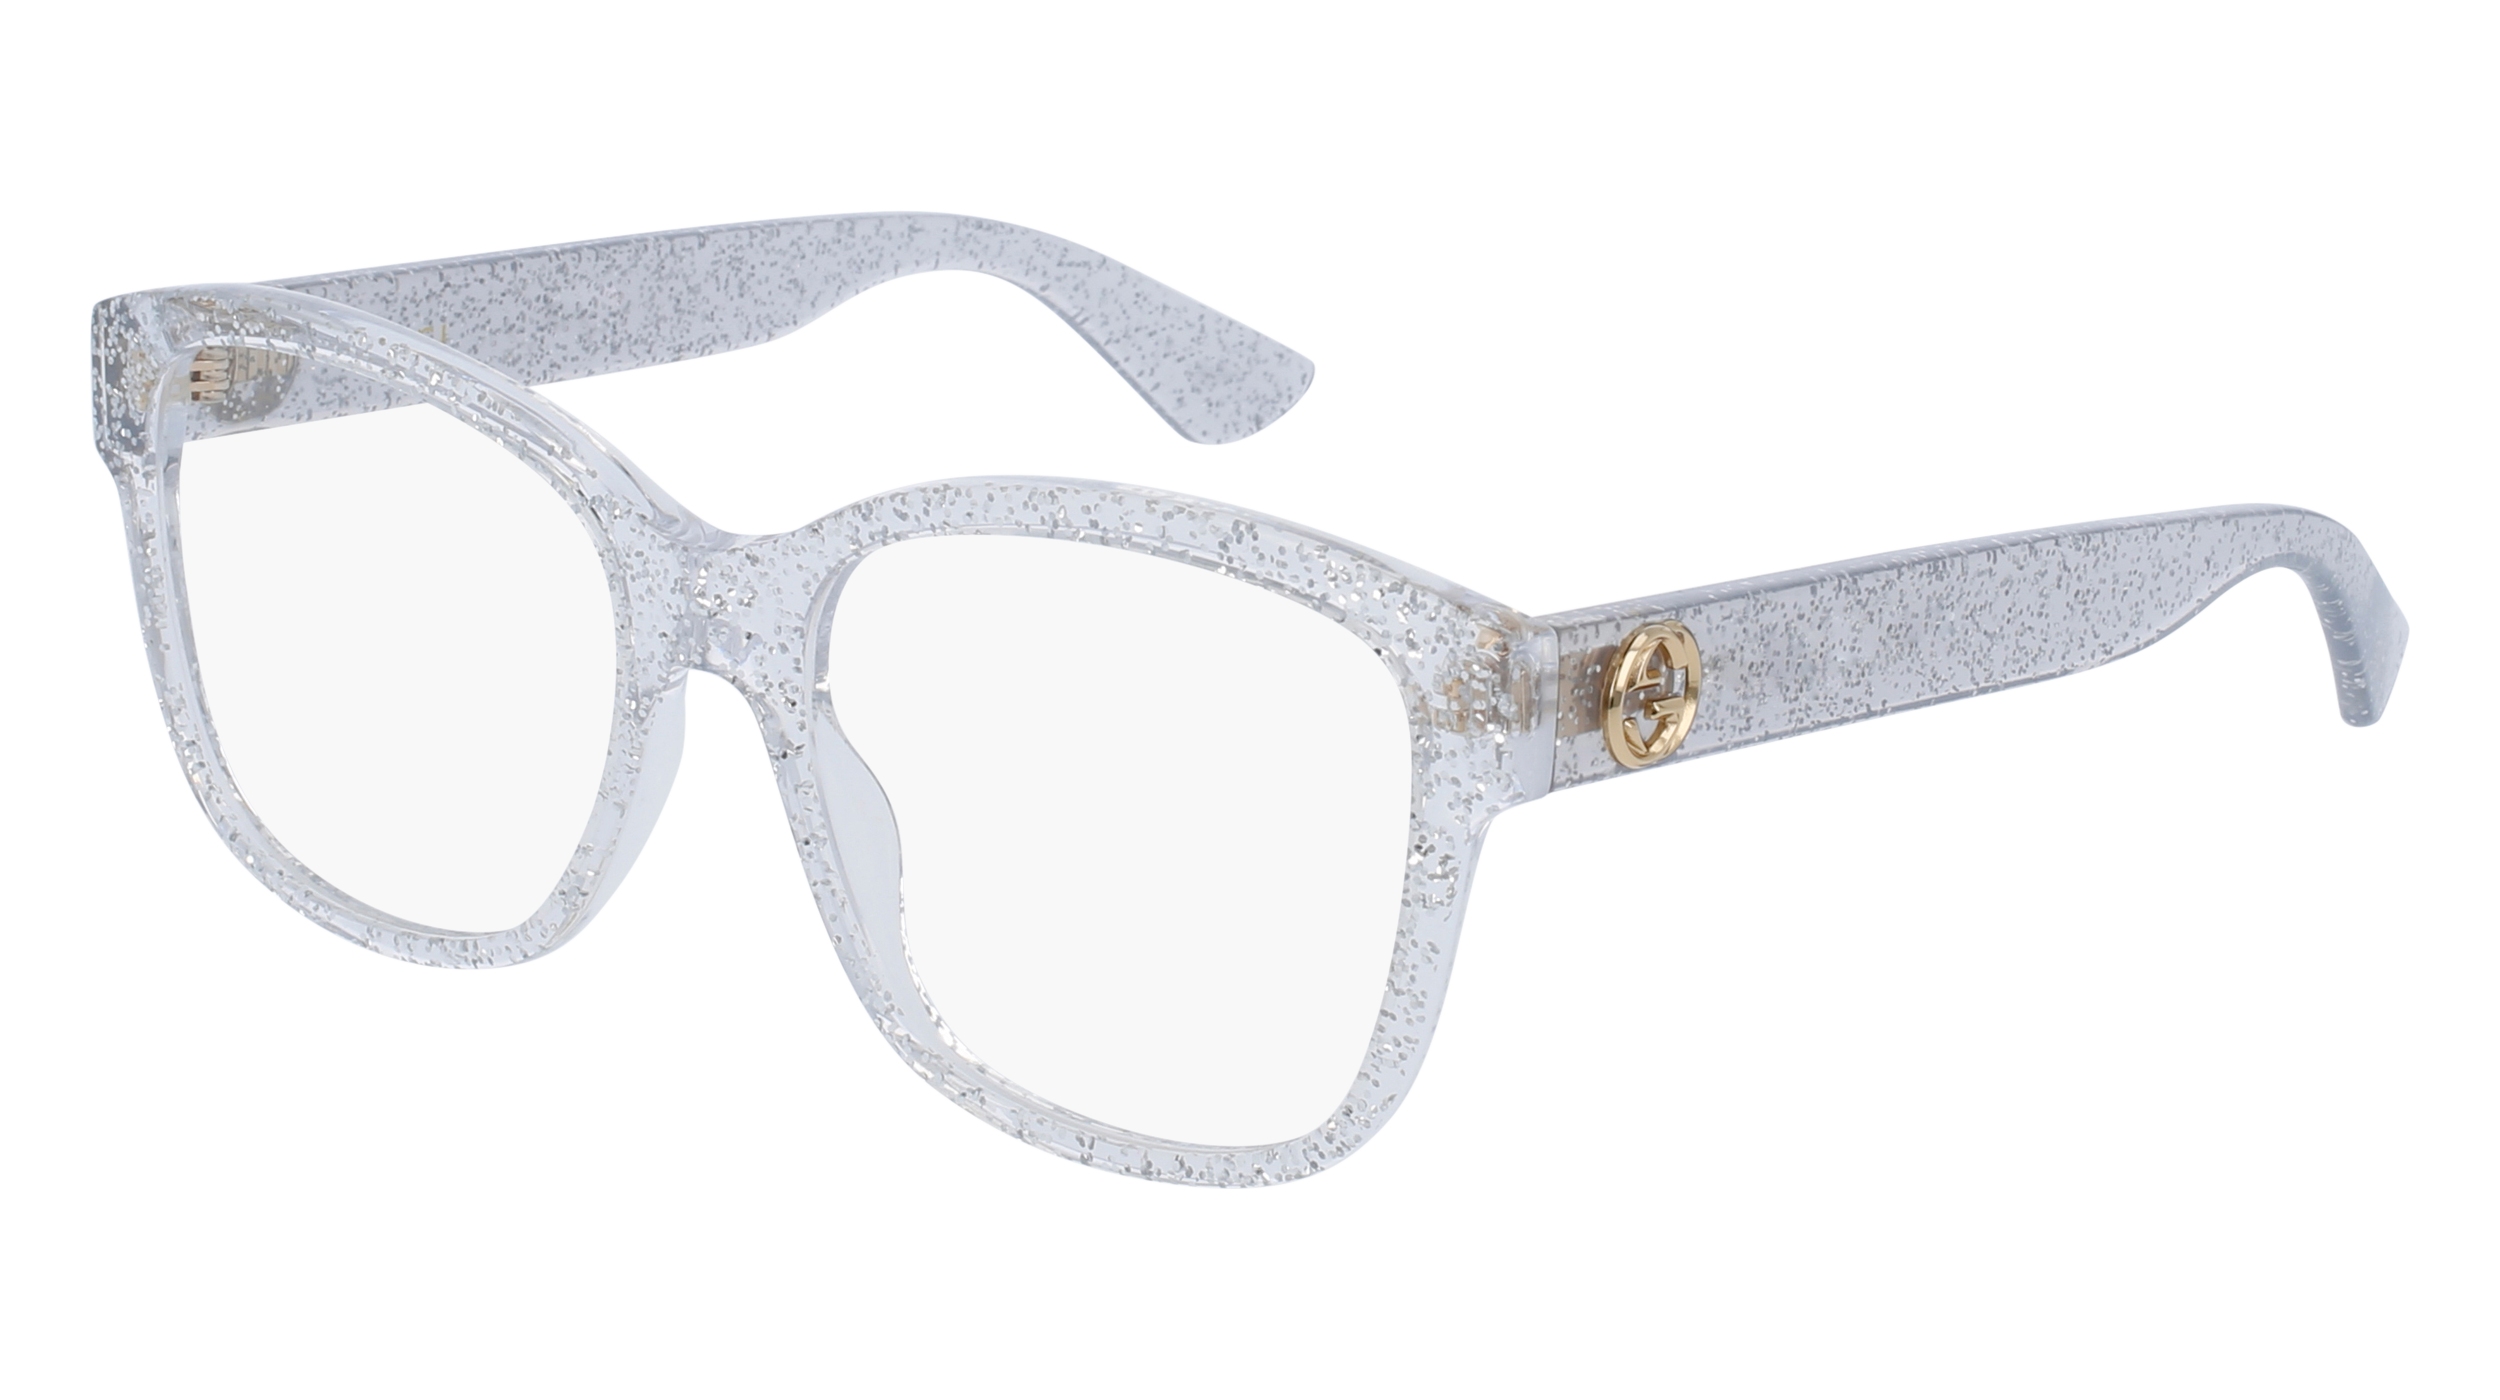 ace92d5e95c Gucci GG0038O 006 54 Shiny Glitter Silver Transparent Rectangle Square   sunglasses  glasses  fashion